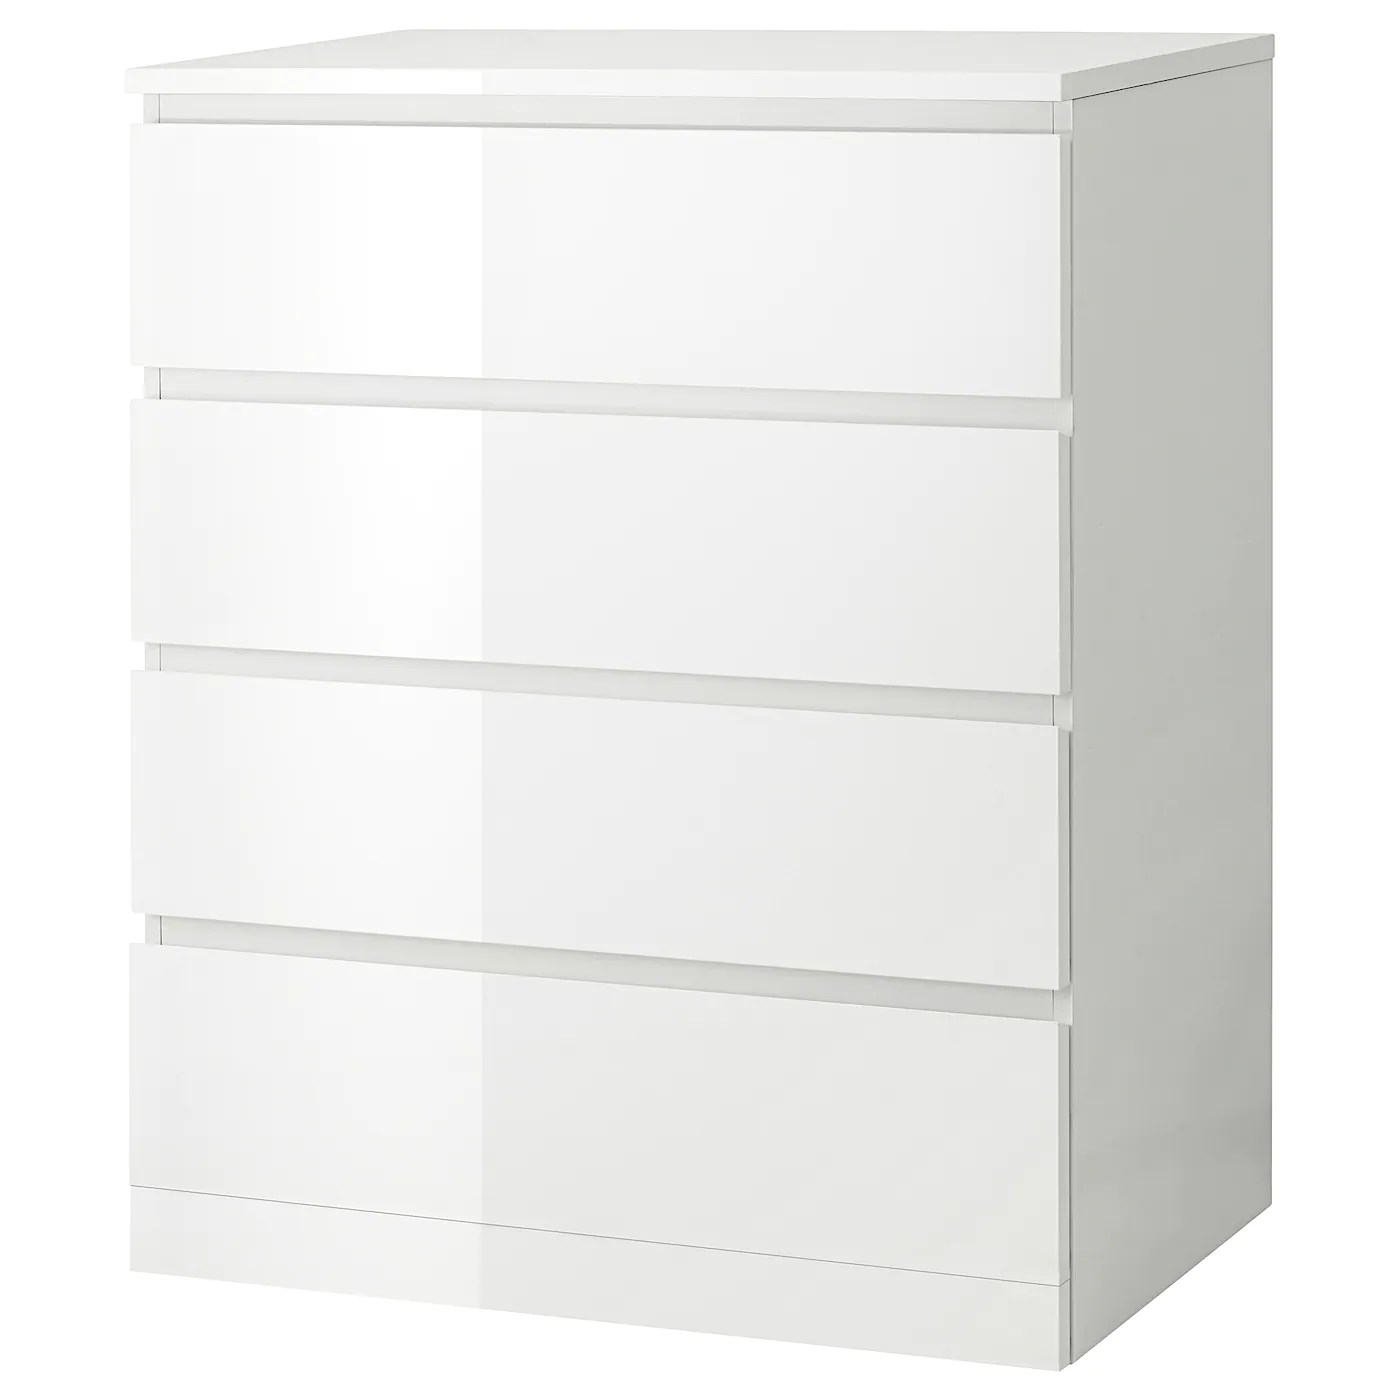 Malm White High Gloss White Chest Of 4 Drawers 80x100 Cm Ikea